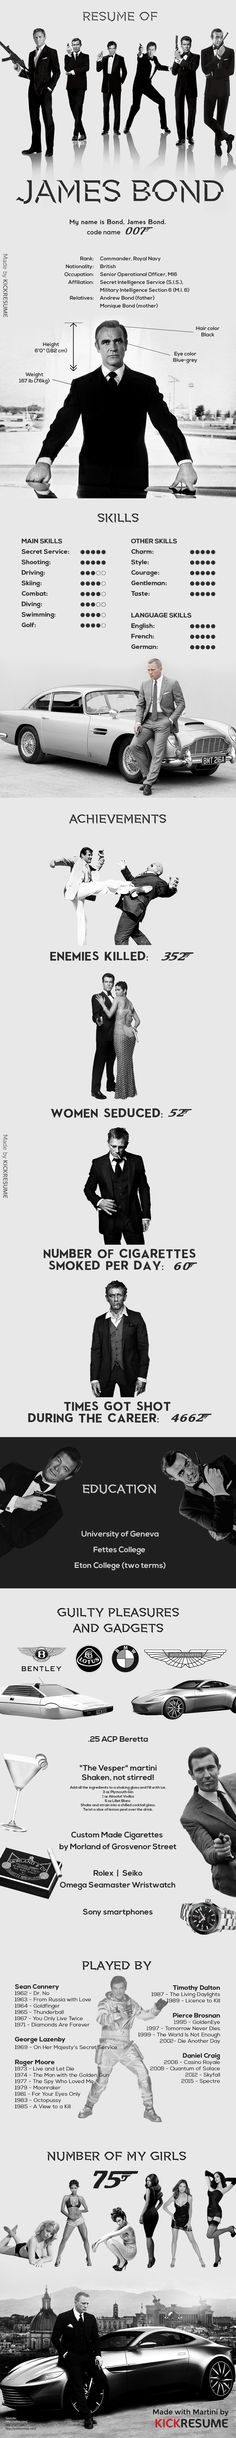 Ultimate resume of James Bond that would make other guys jealous. James Bond and Jupiter shared their ability to pick up women. Estilo James Bond, James Bond Style, James Bond Party, James Bond Movies, Roger Moore, Sean Connery, Daniel Craig, Geek Culture, Service Secret